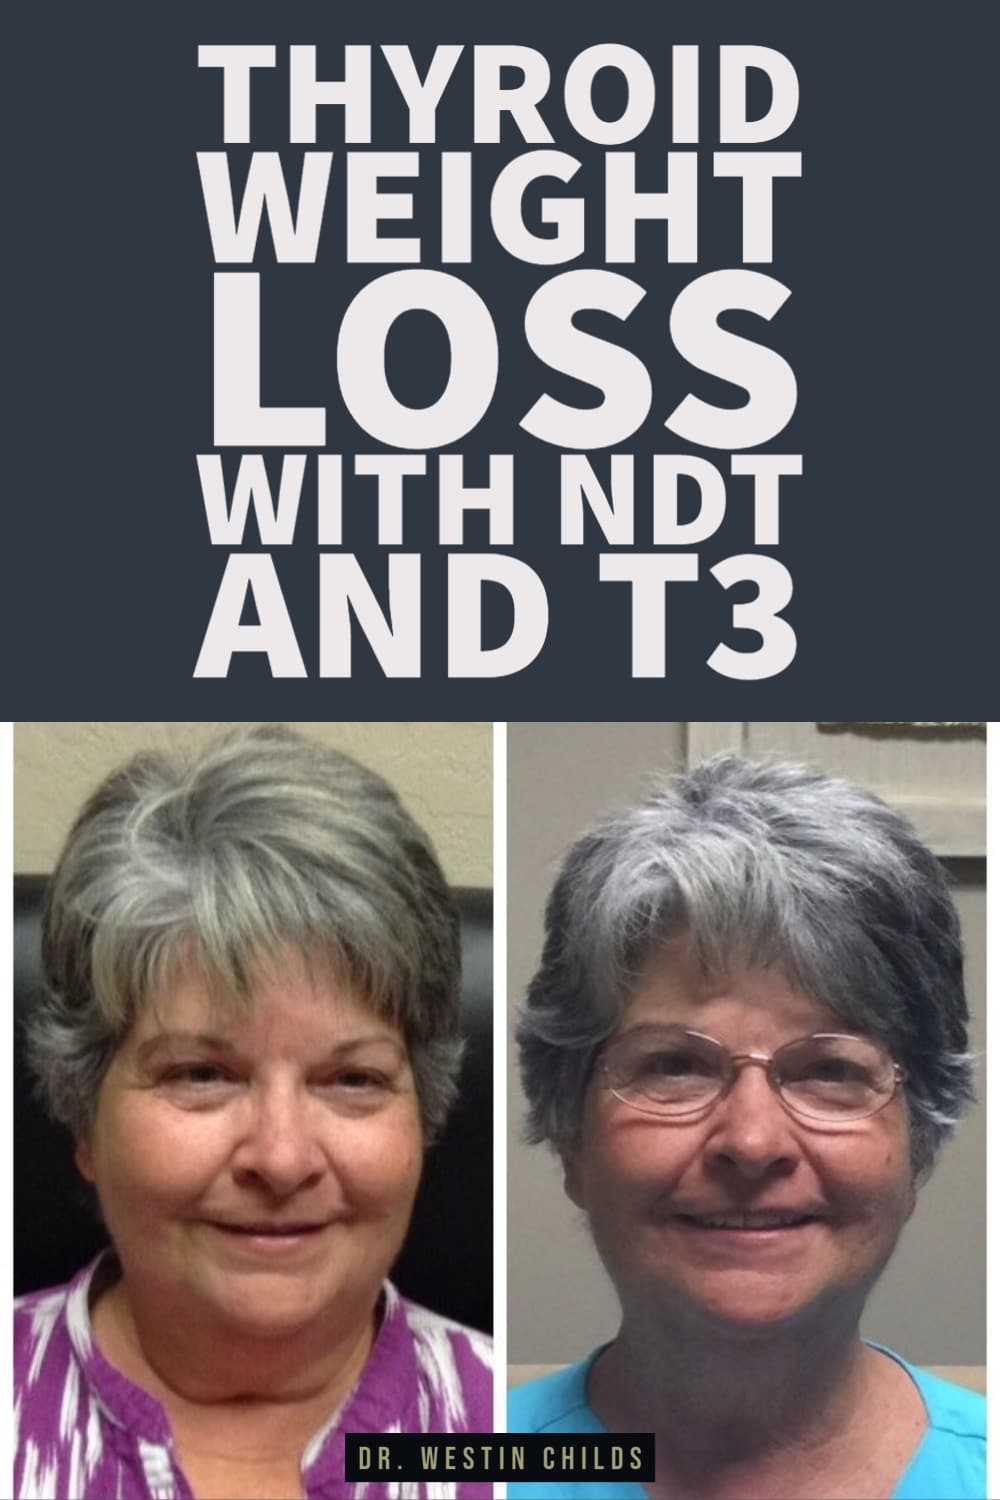 thyroid weight loss with NDT and T3